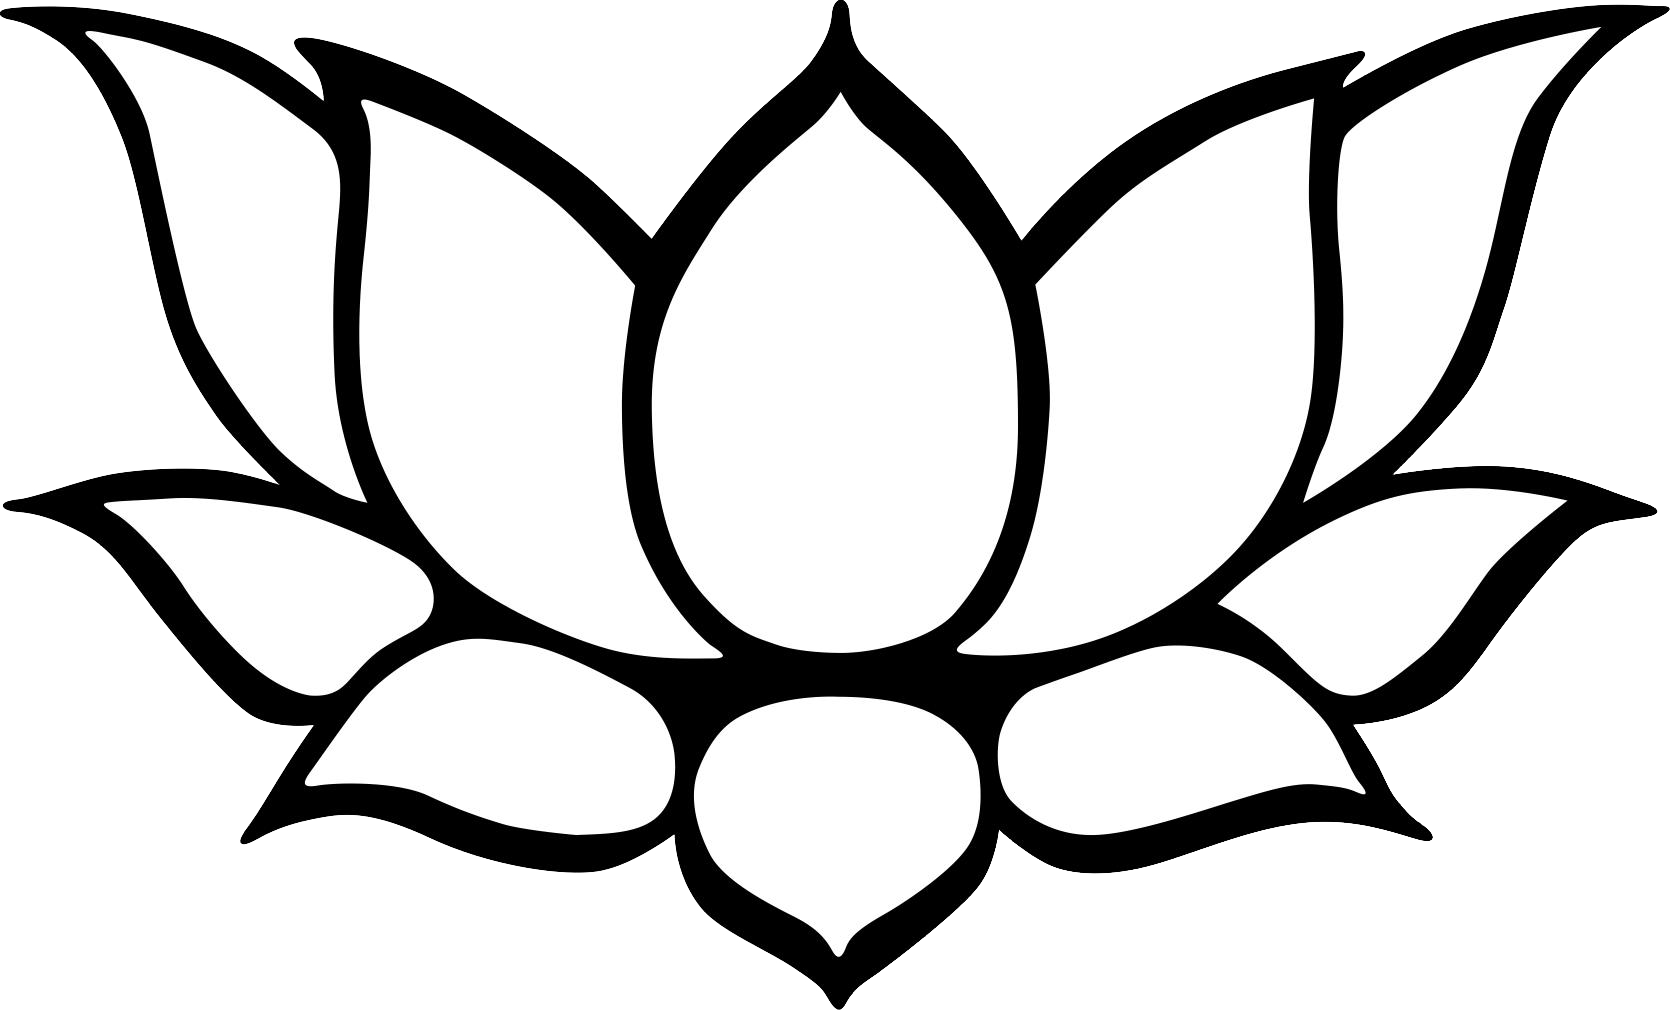 Line Art Lotus Flower : Lotus flower line drawing cliparts